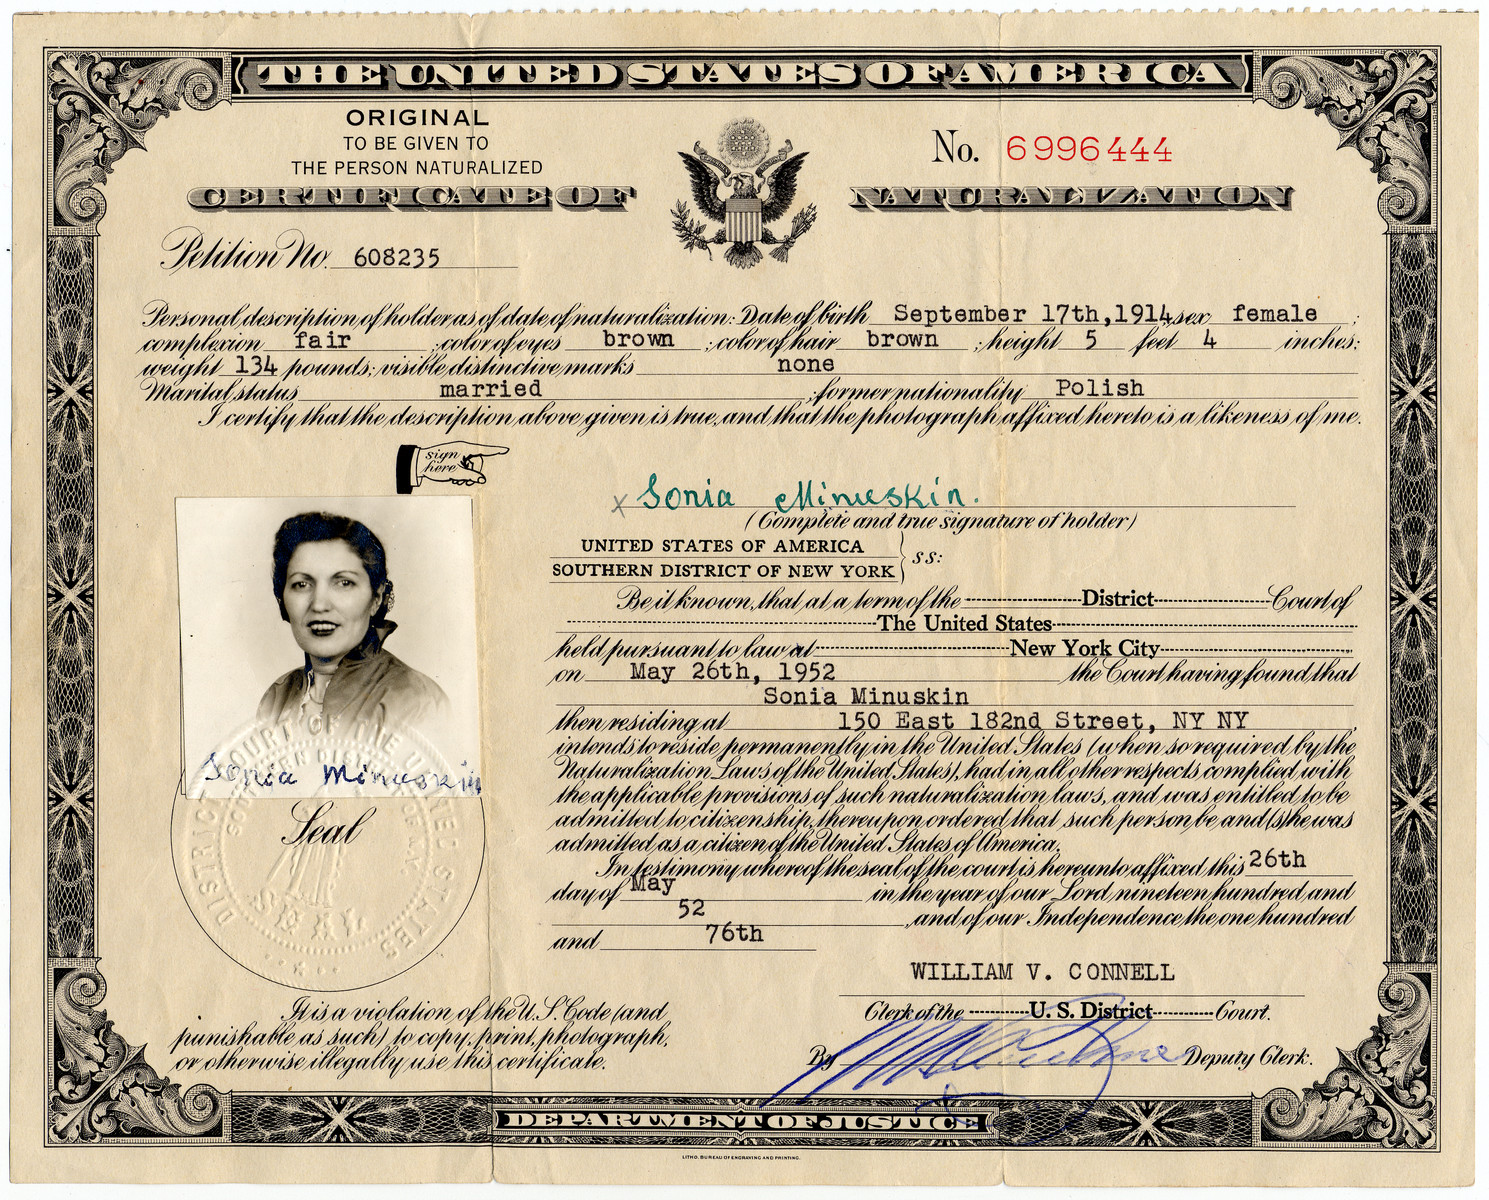 Certificate of Naturalization issued to Sonia Minuskin.